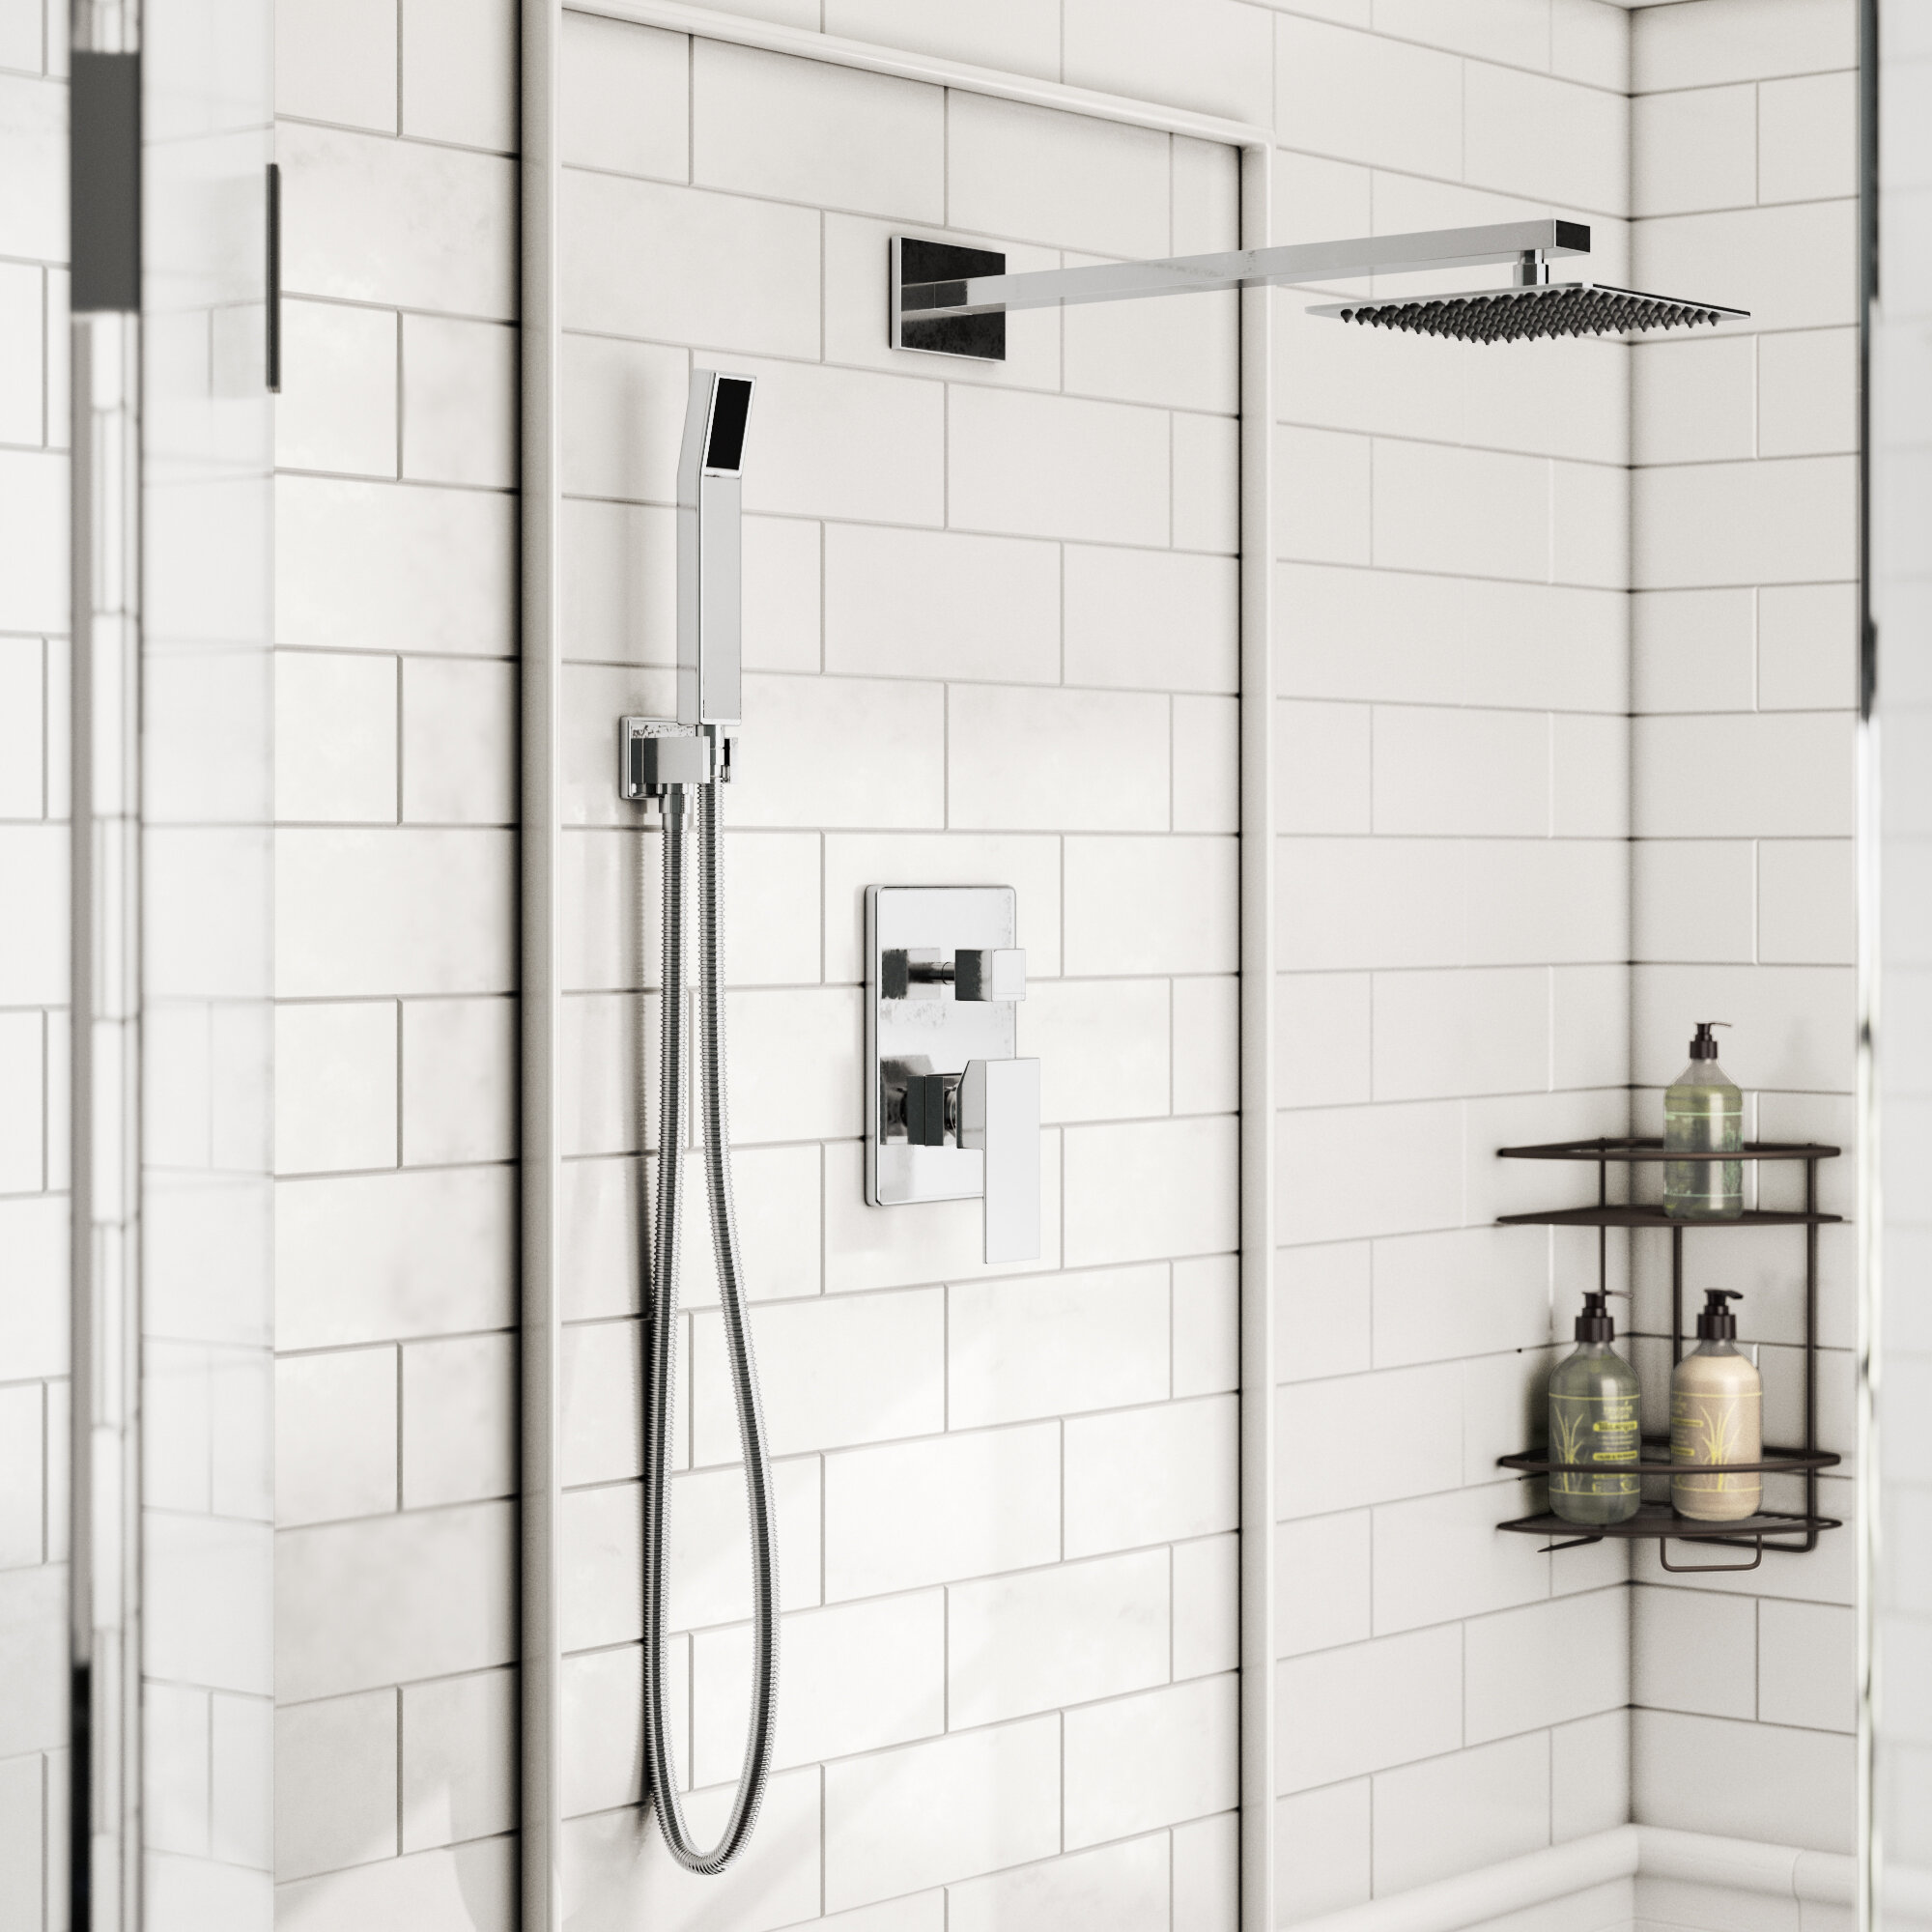 Rebrilliant Cahoon Volume Control Complete Shower System With Rough In Valve Reviews Wayfair